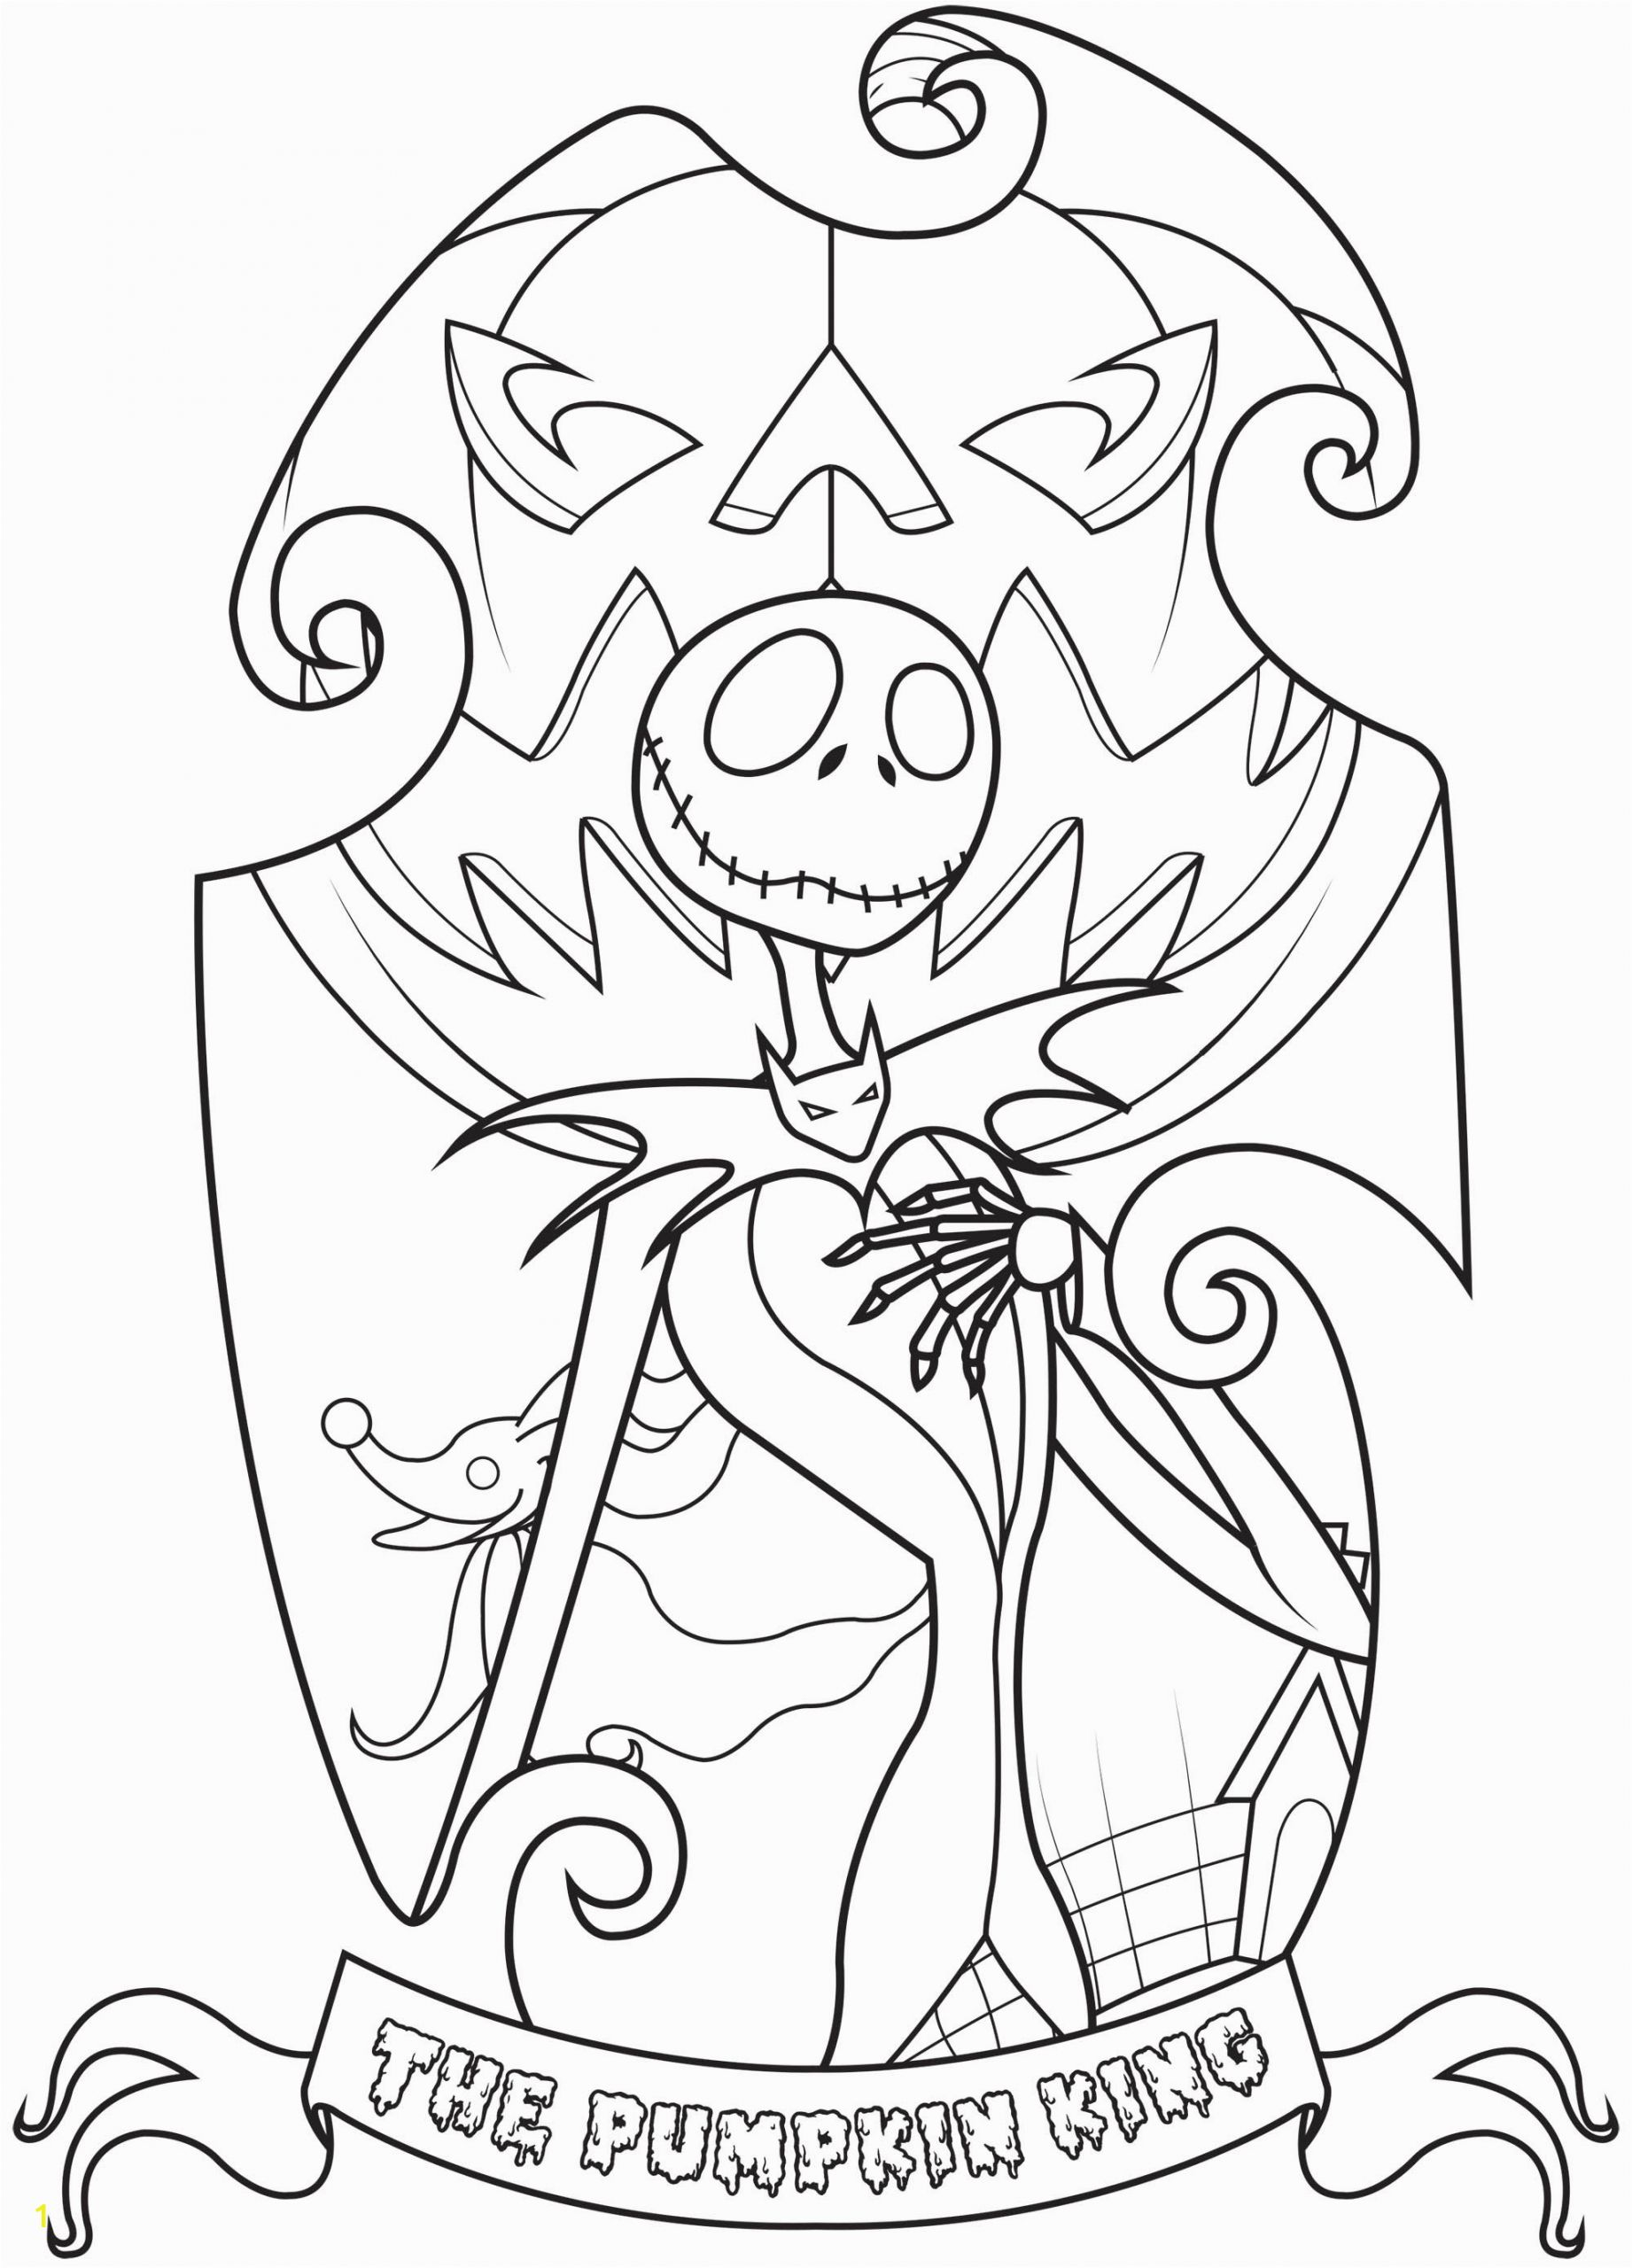 image=the nightmare before christmas coloring jack skellington king of halloween town simple 1